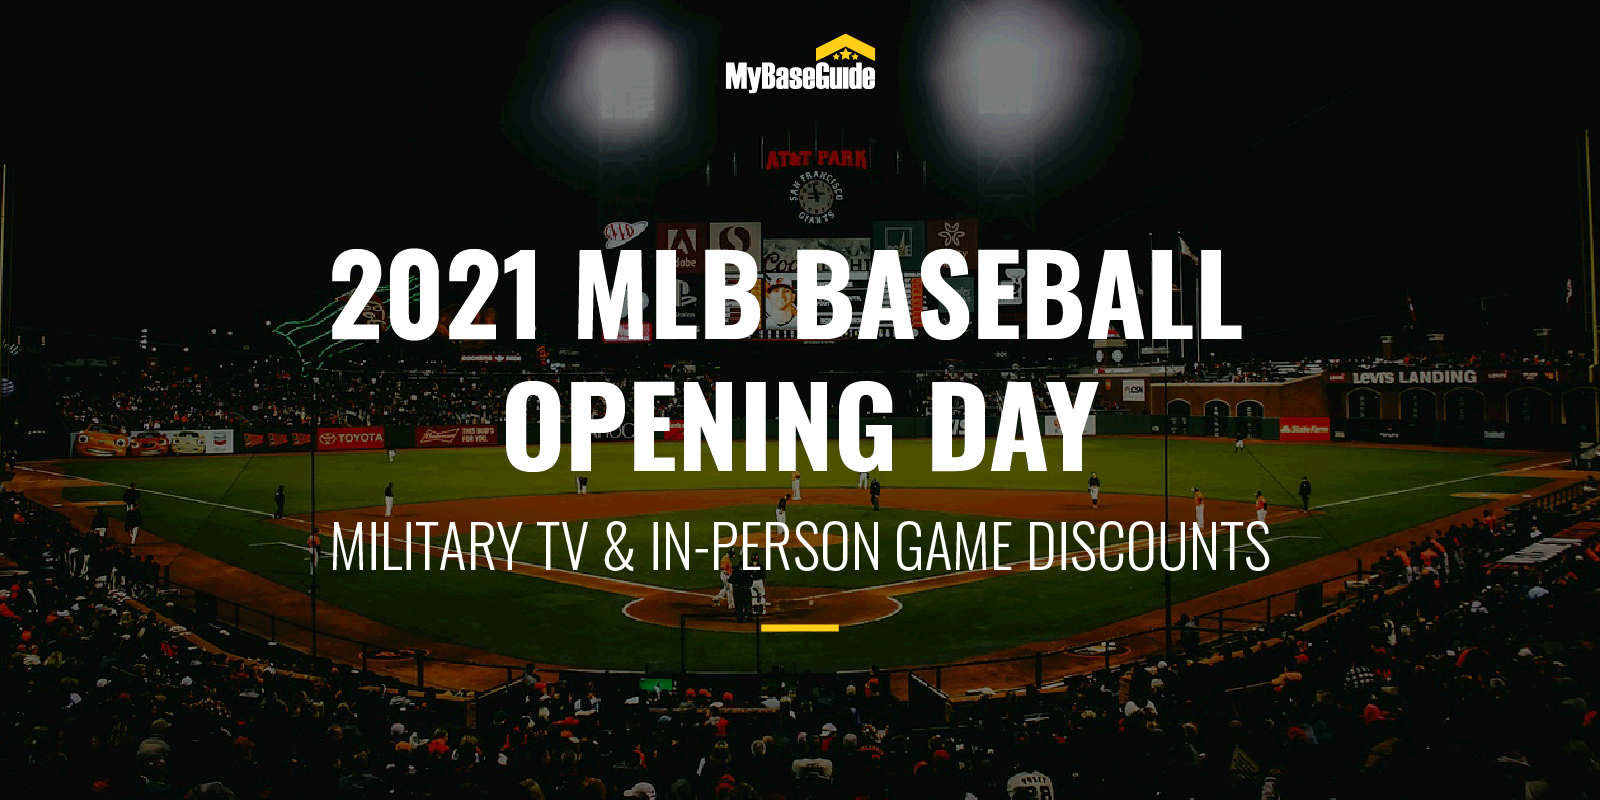 2021 MLB Baseball Opening Day, Military TV & In-Person Game Discounts